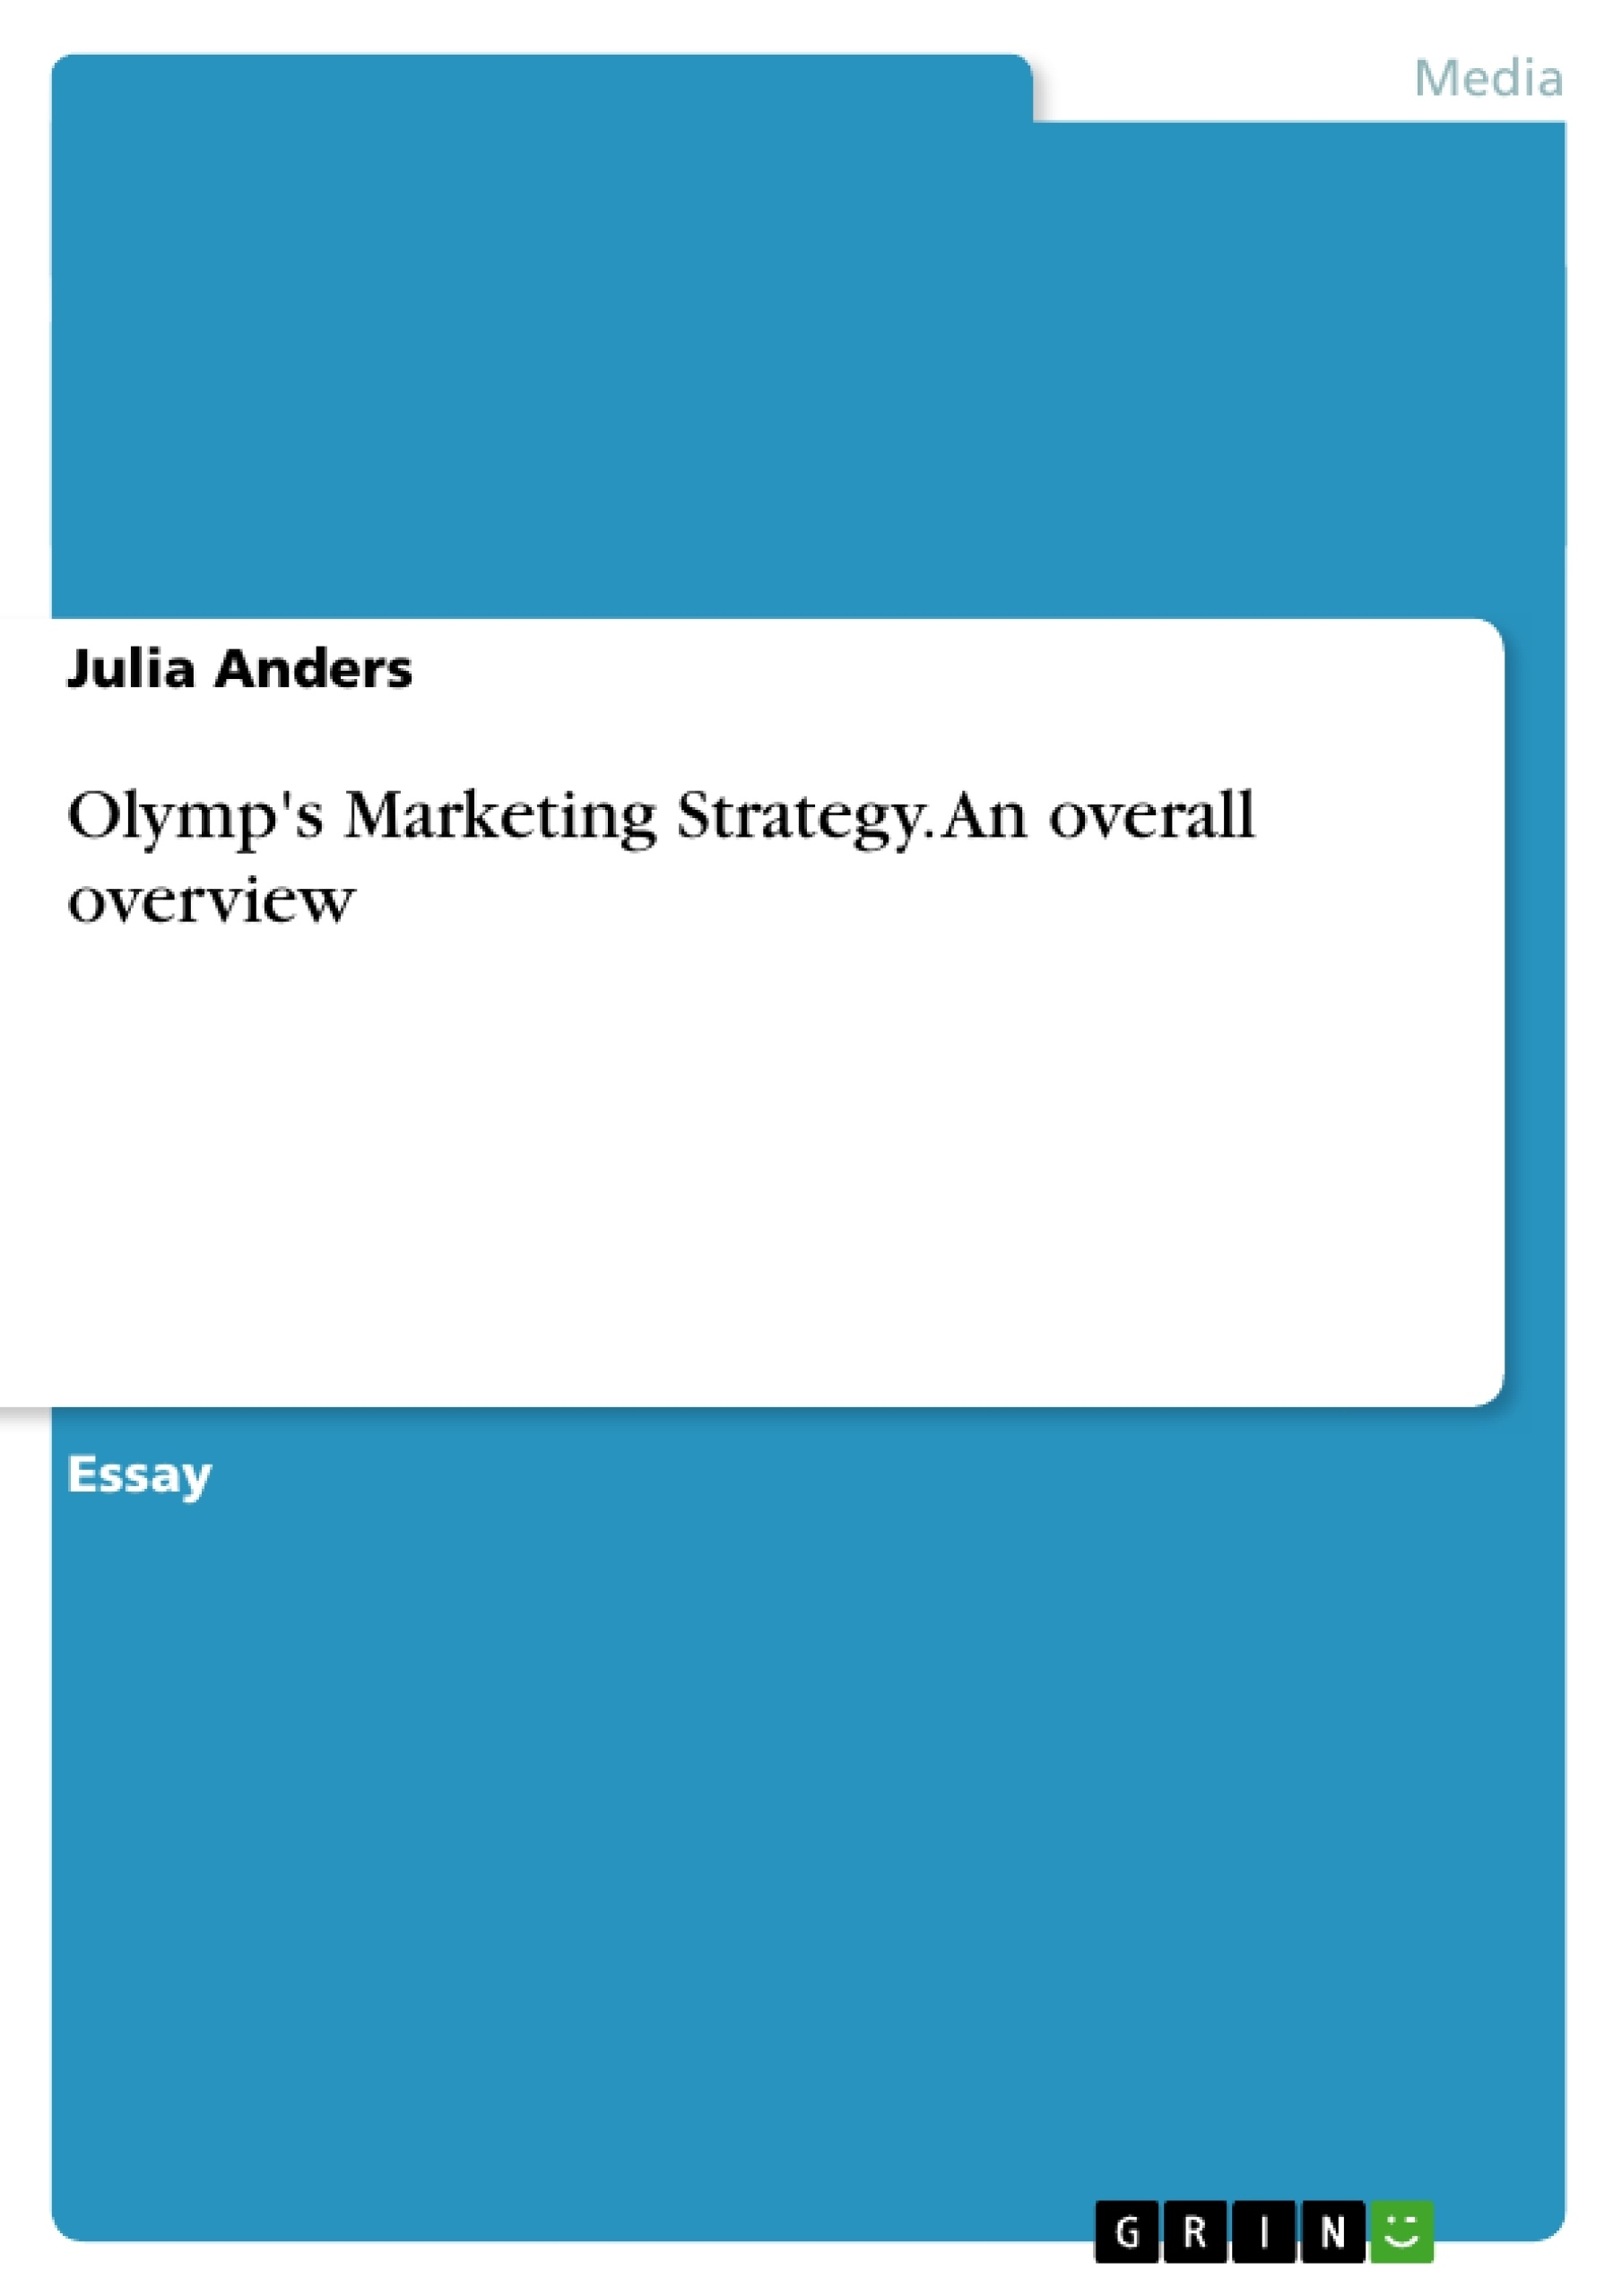 Title: Olymp's Marketing Strategy. An overall overview